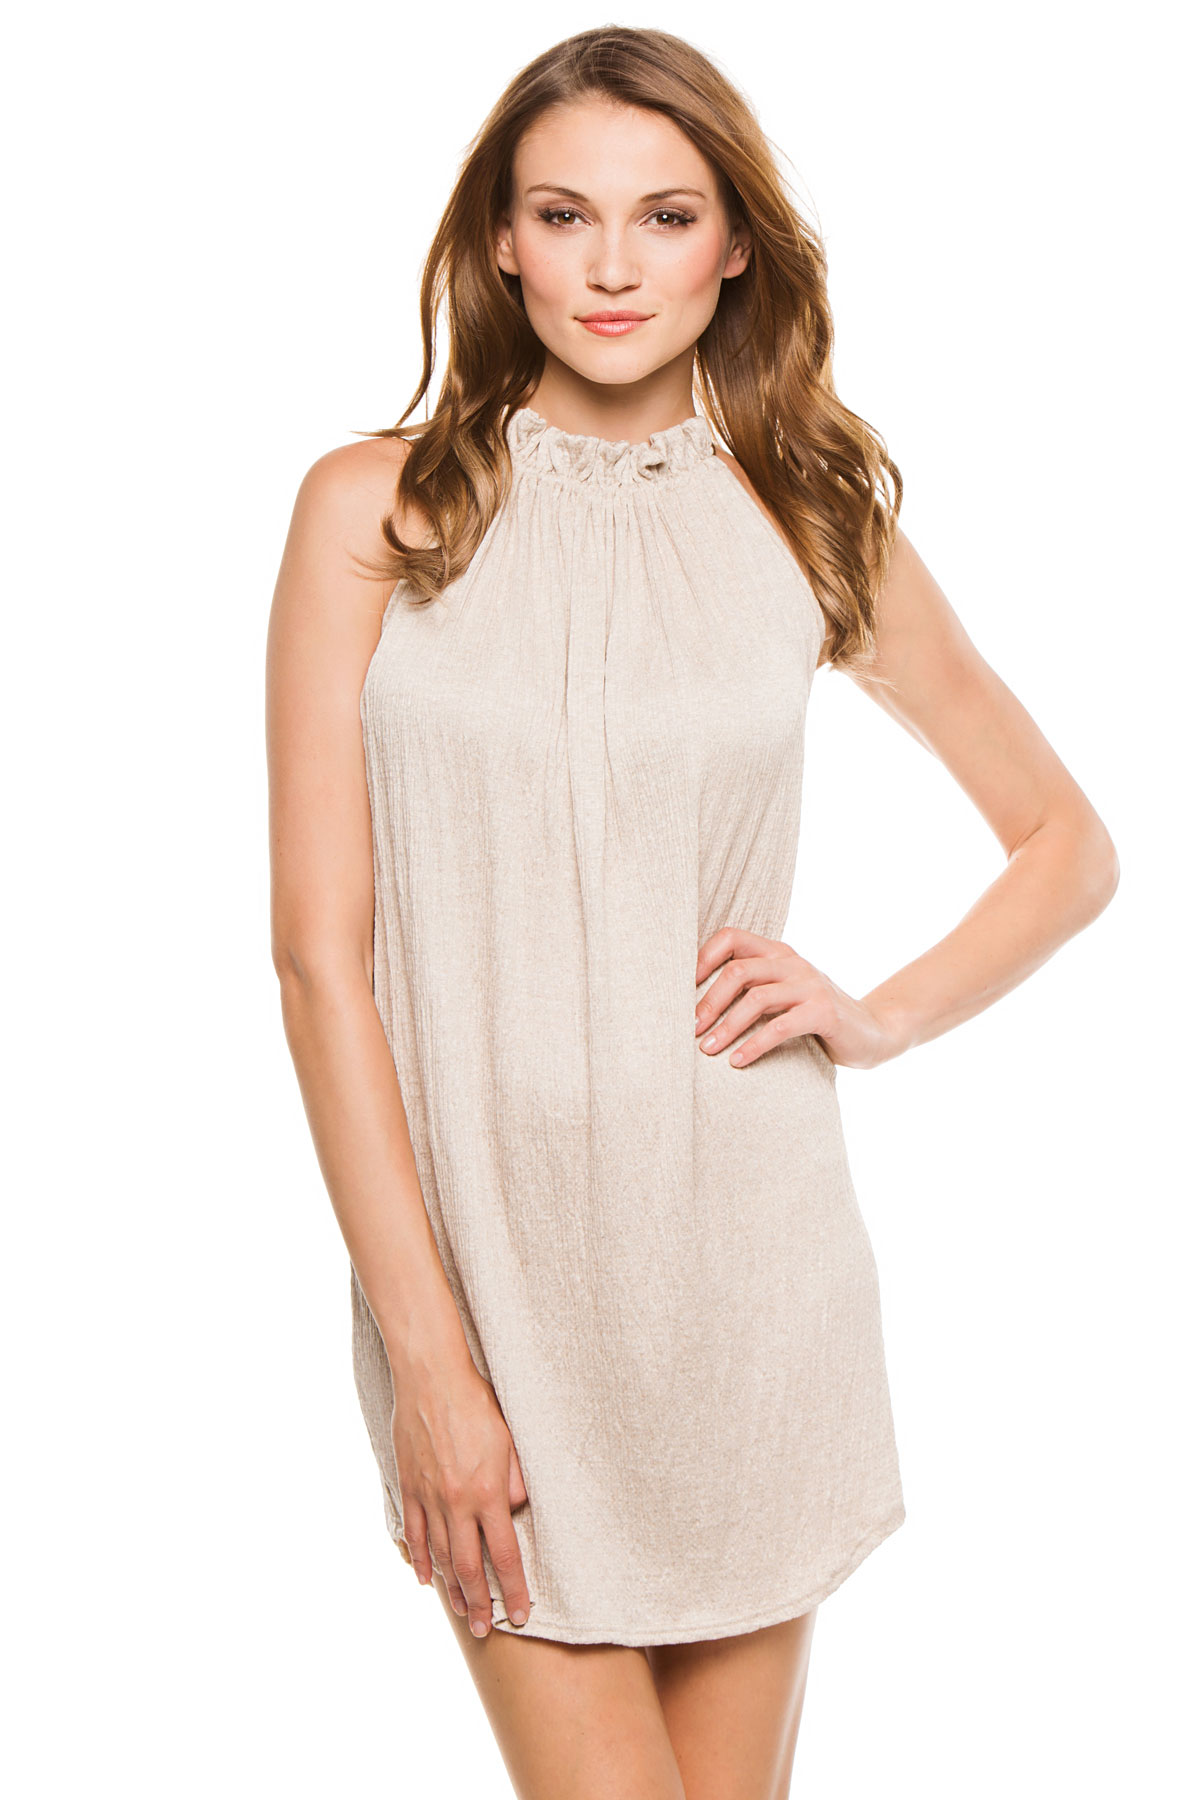 Gathered High Neck Short Dress - Taupe 1